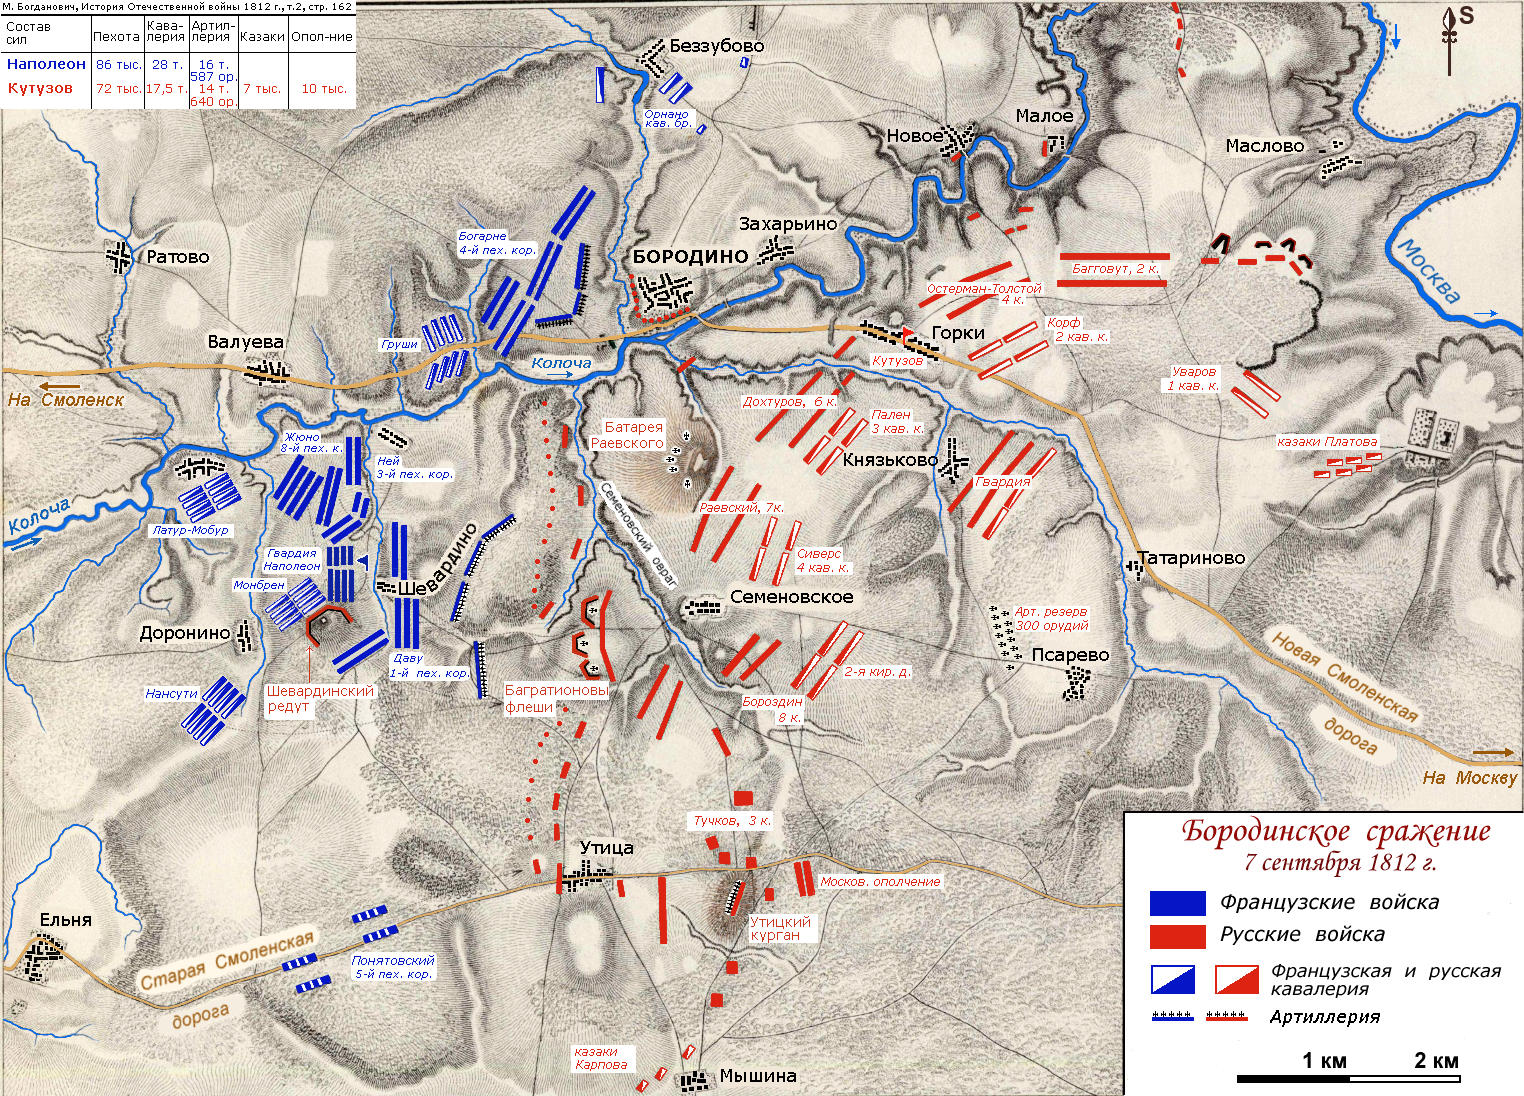 waterloo battle map with File Battle Of Borodino 1812 Map on File Battle of Borodino 1812 map as well 522056 further France together with Other Countries Travel Notes additionally Revolution of 1848.